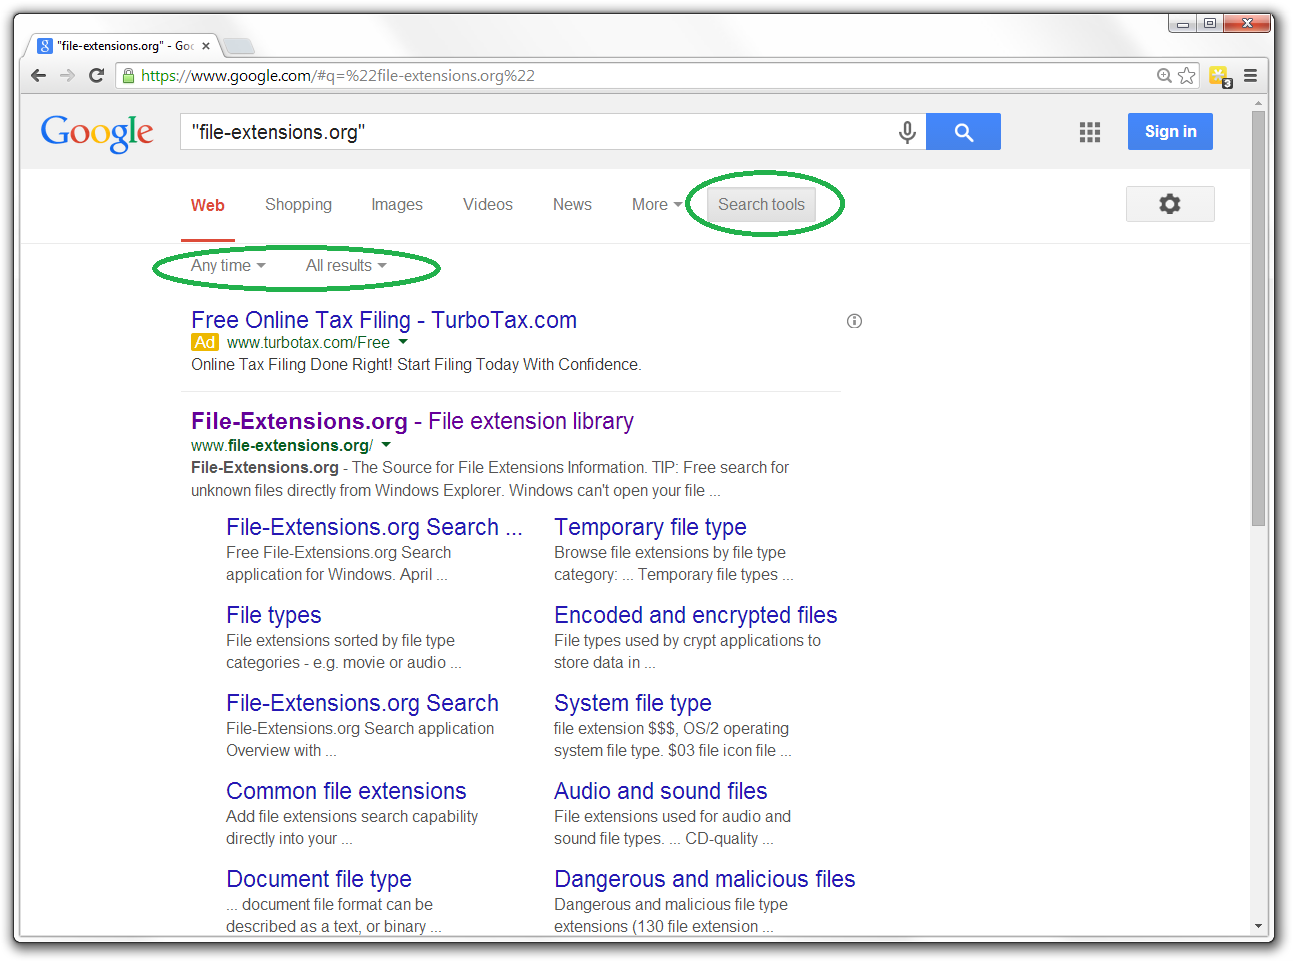 Search Tools for Google Search